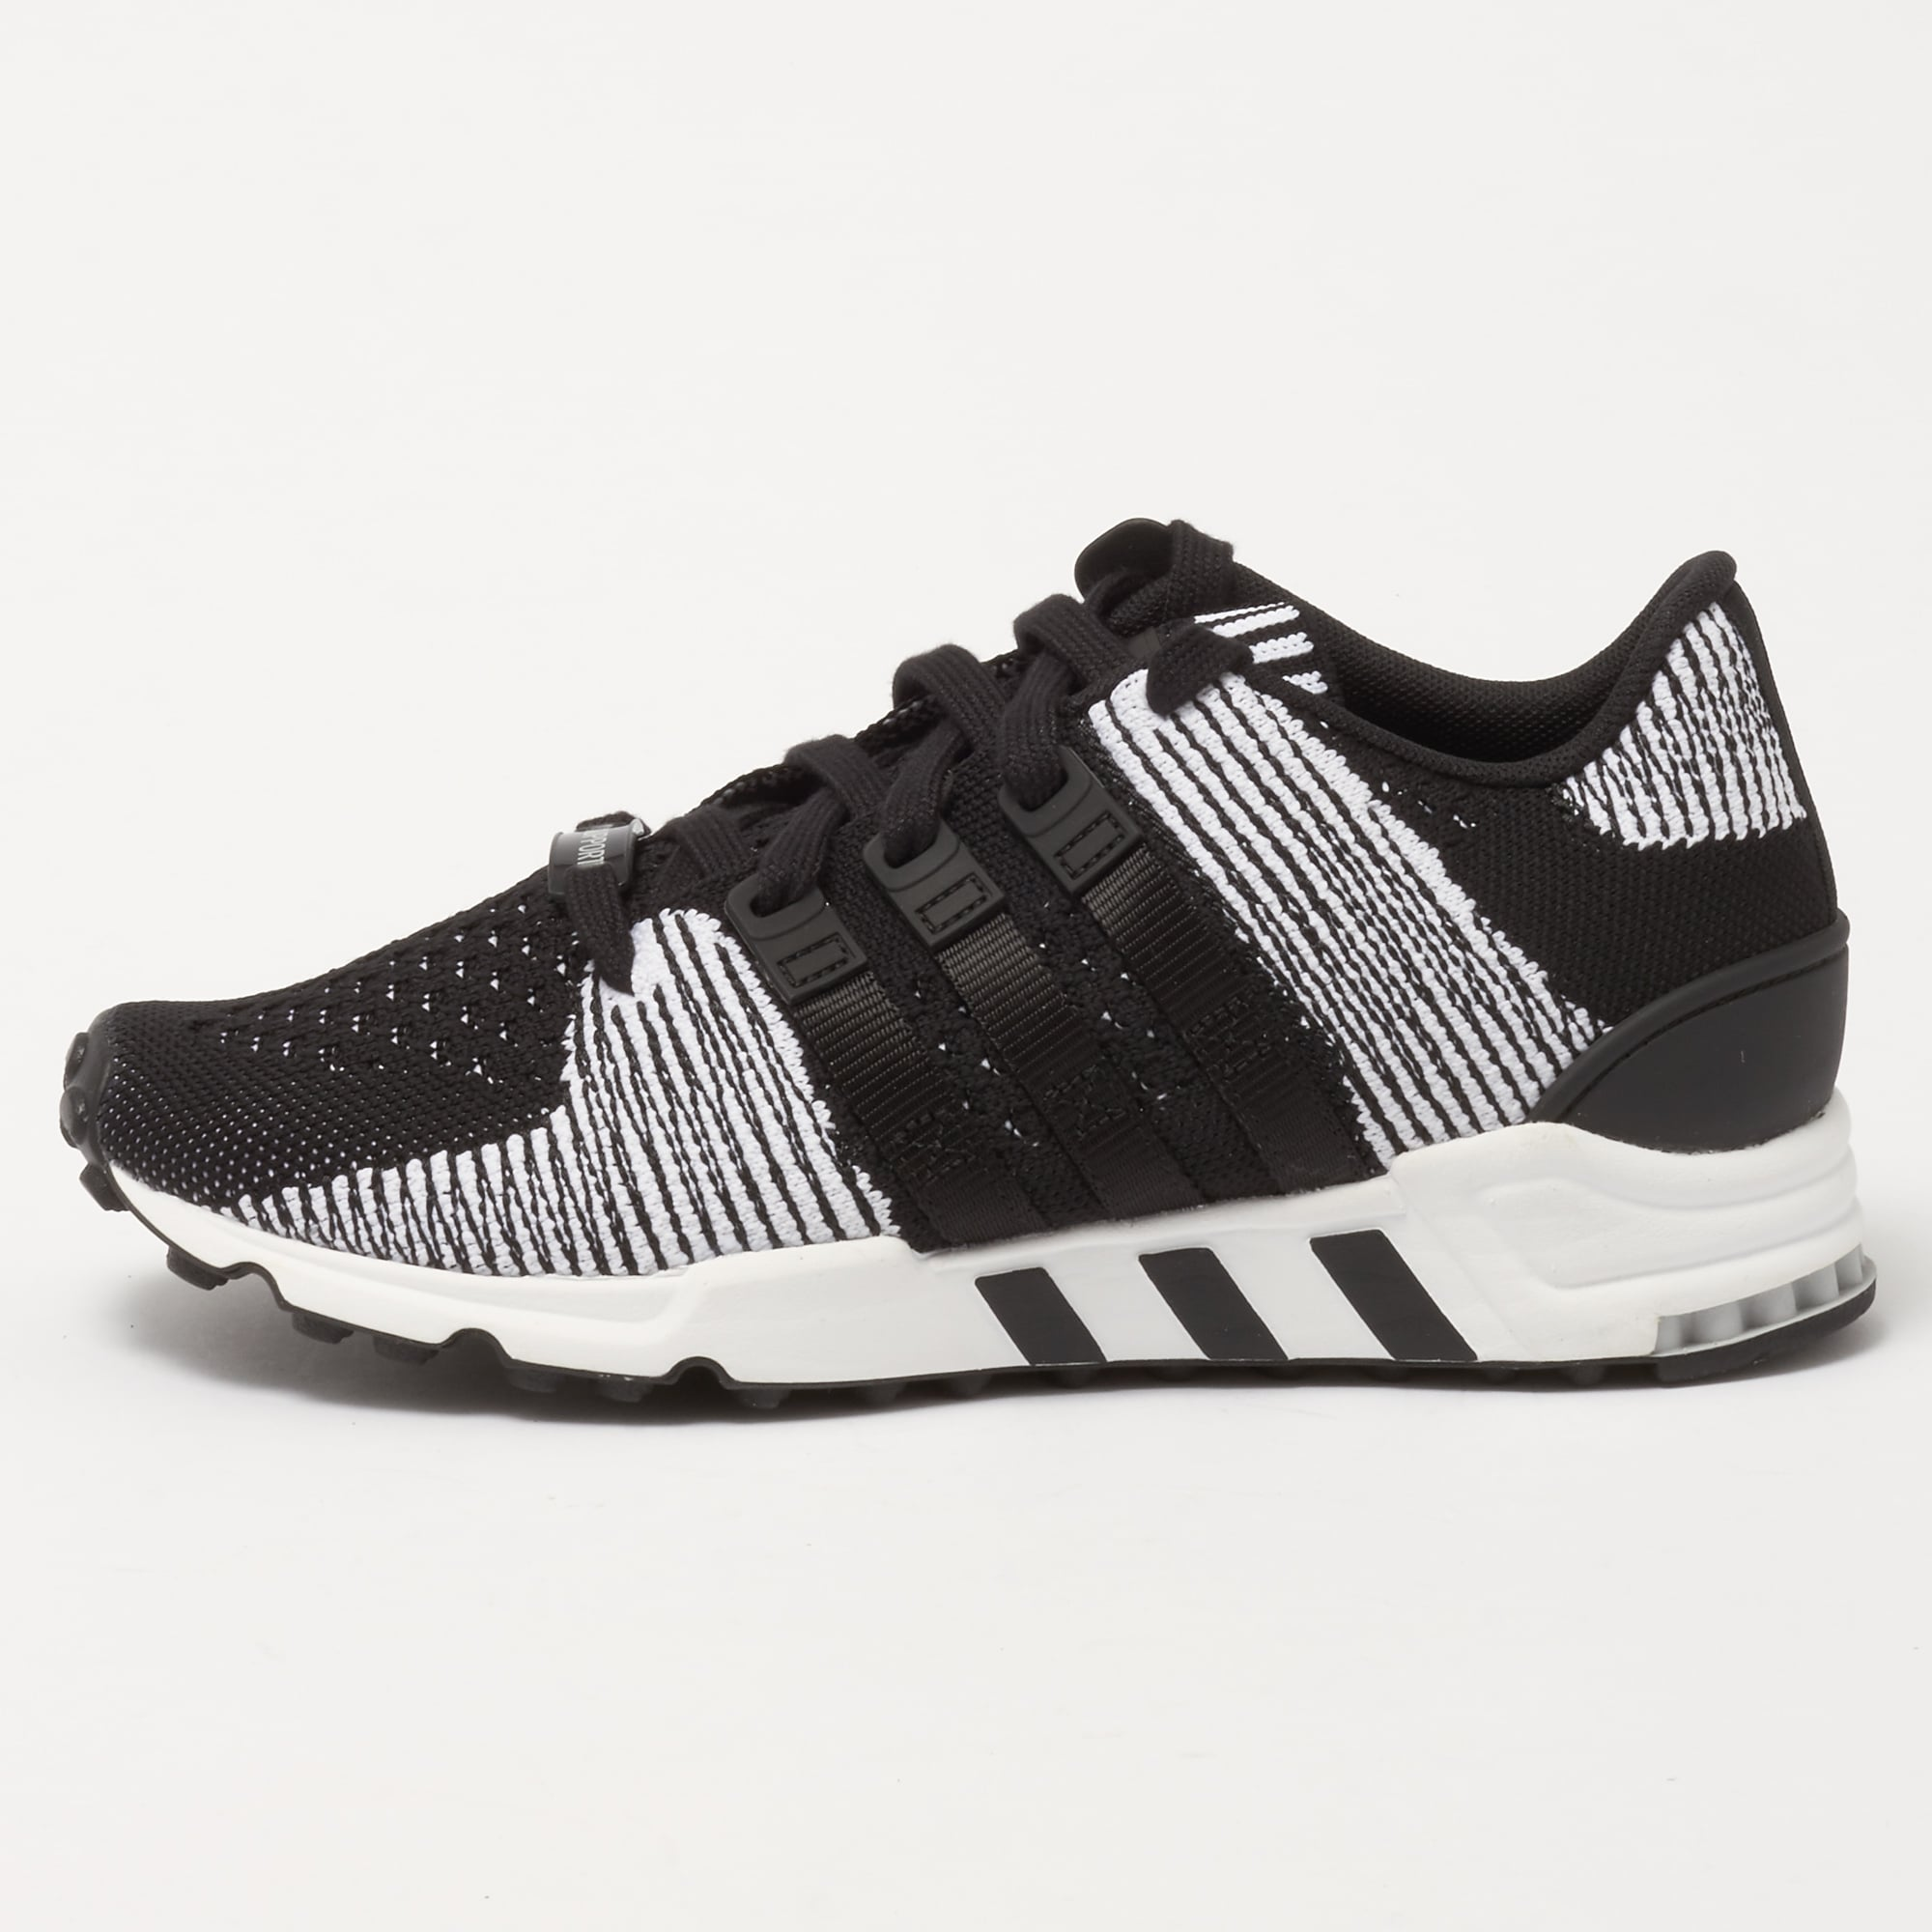 uk availability aliexpress promo codes adidas Originals EQT Support RF Primeknit - Core Black & FTW White